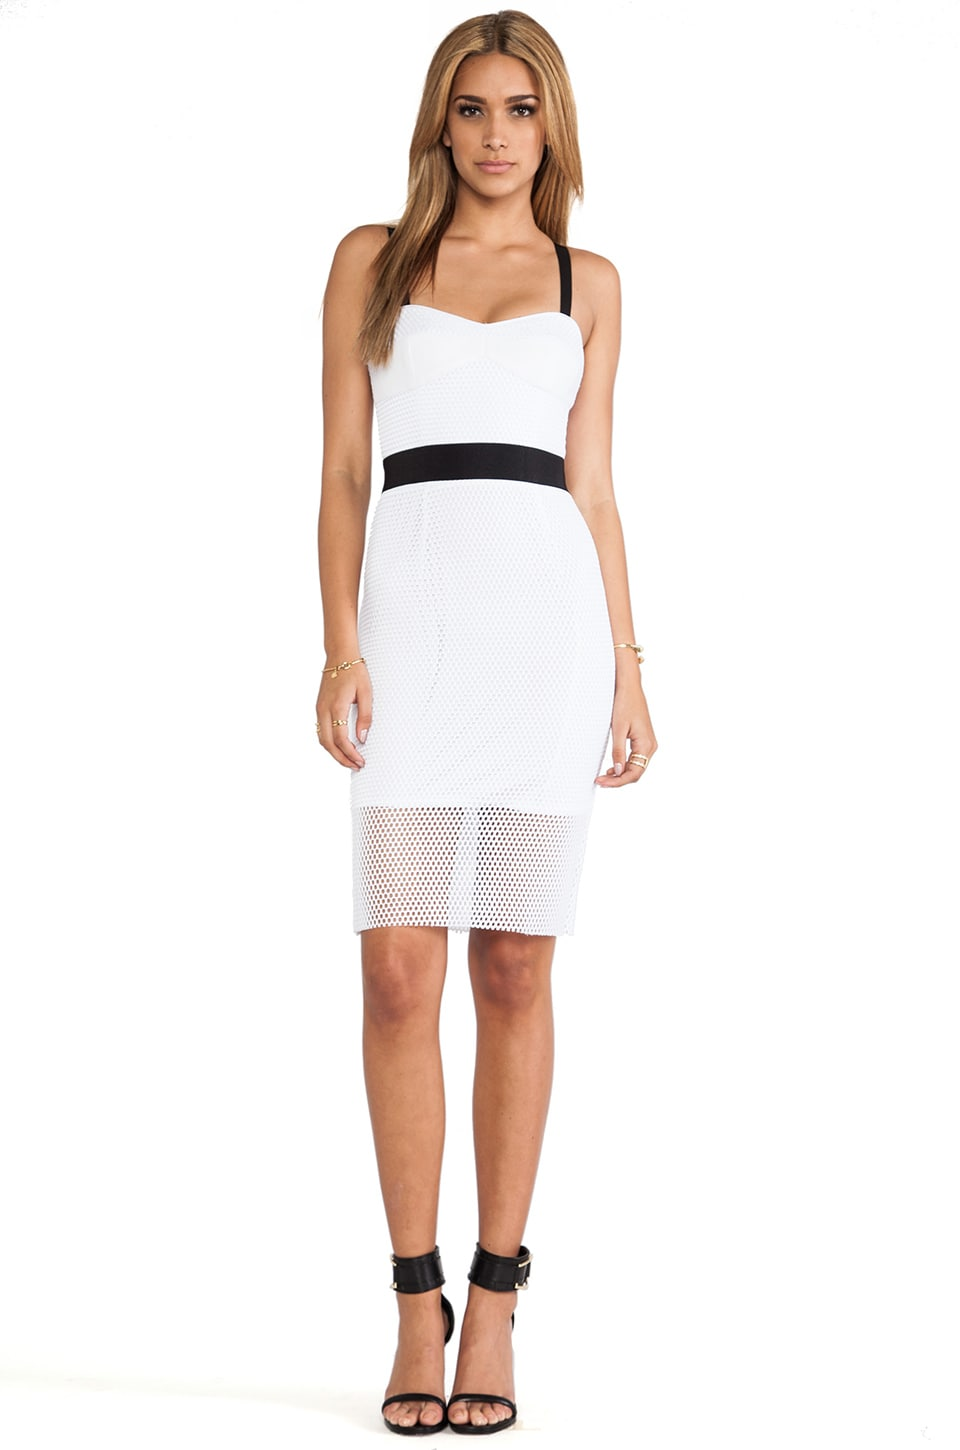 MILLY Bustier Strap Dress in White